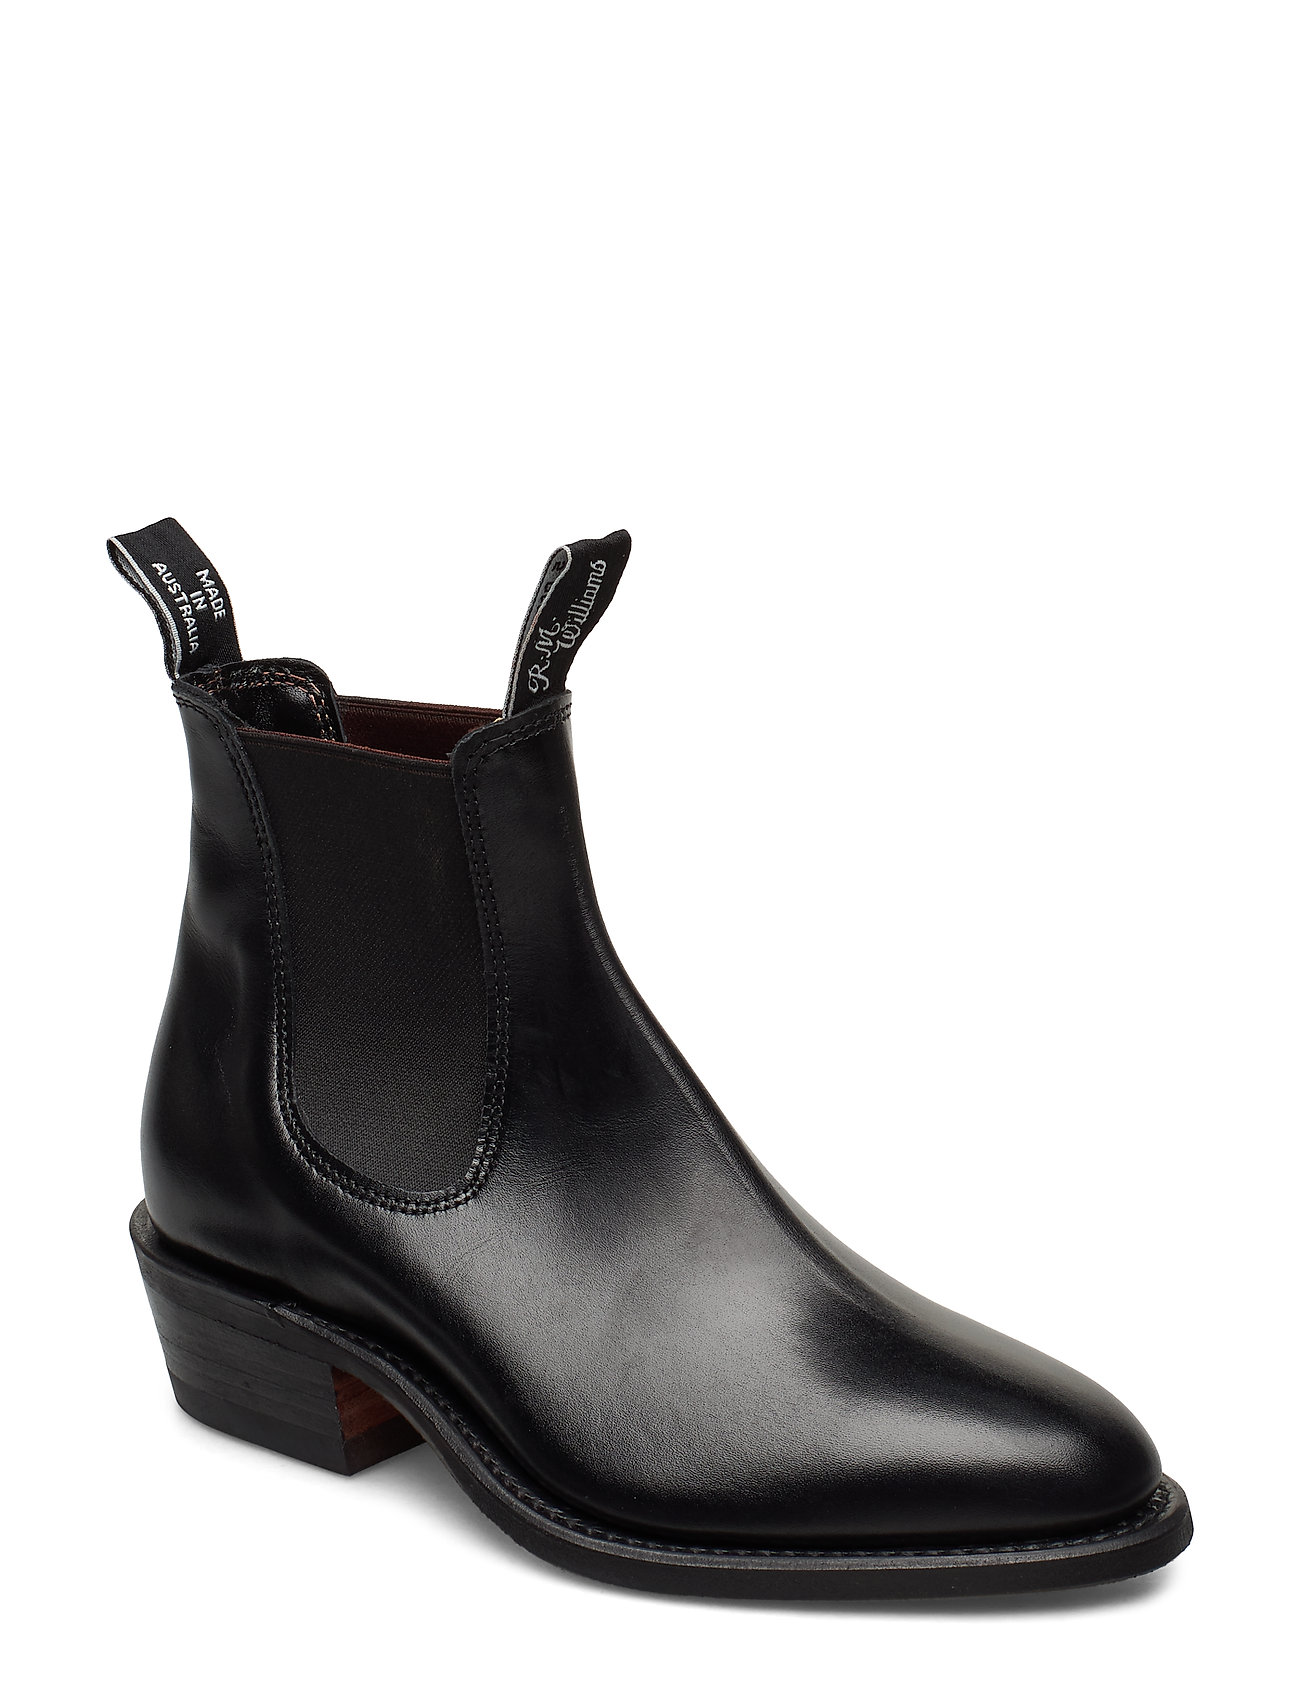 Image of The Yearling Shoes Boots Ankle Boots Ankle Boot - Heel Sort R.M. Williams (3270672595)